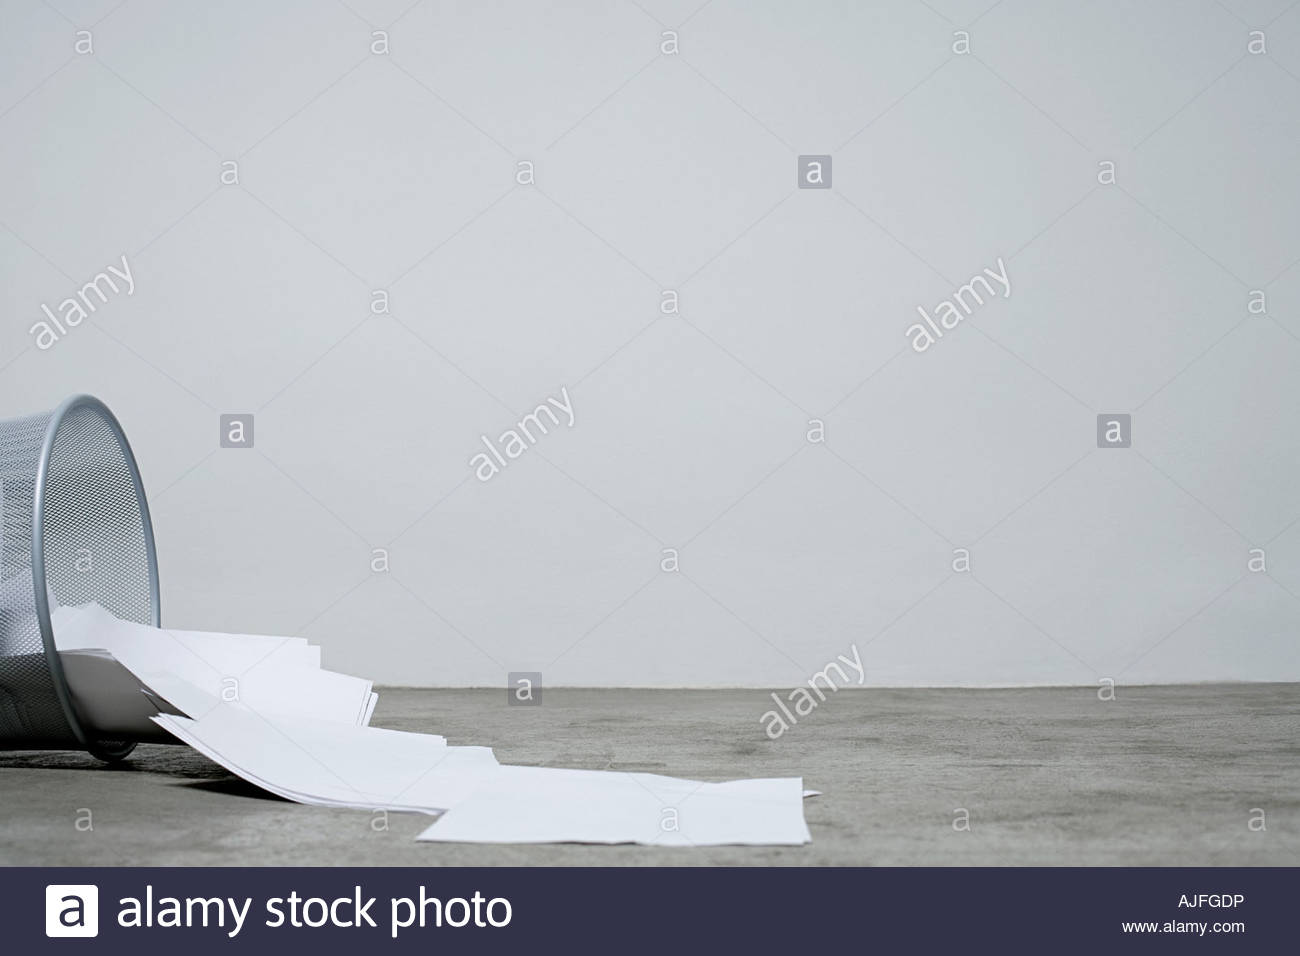 Paper spilling out of a bin - Stock Image